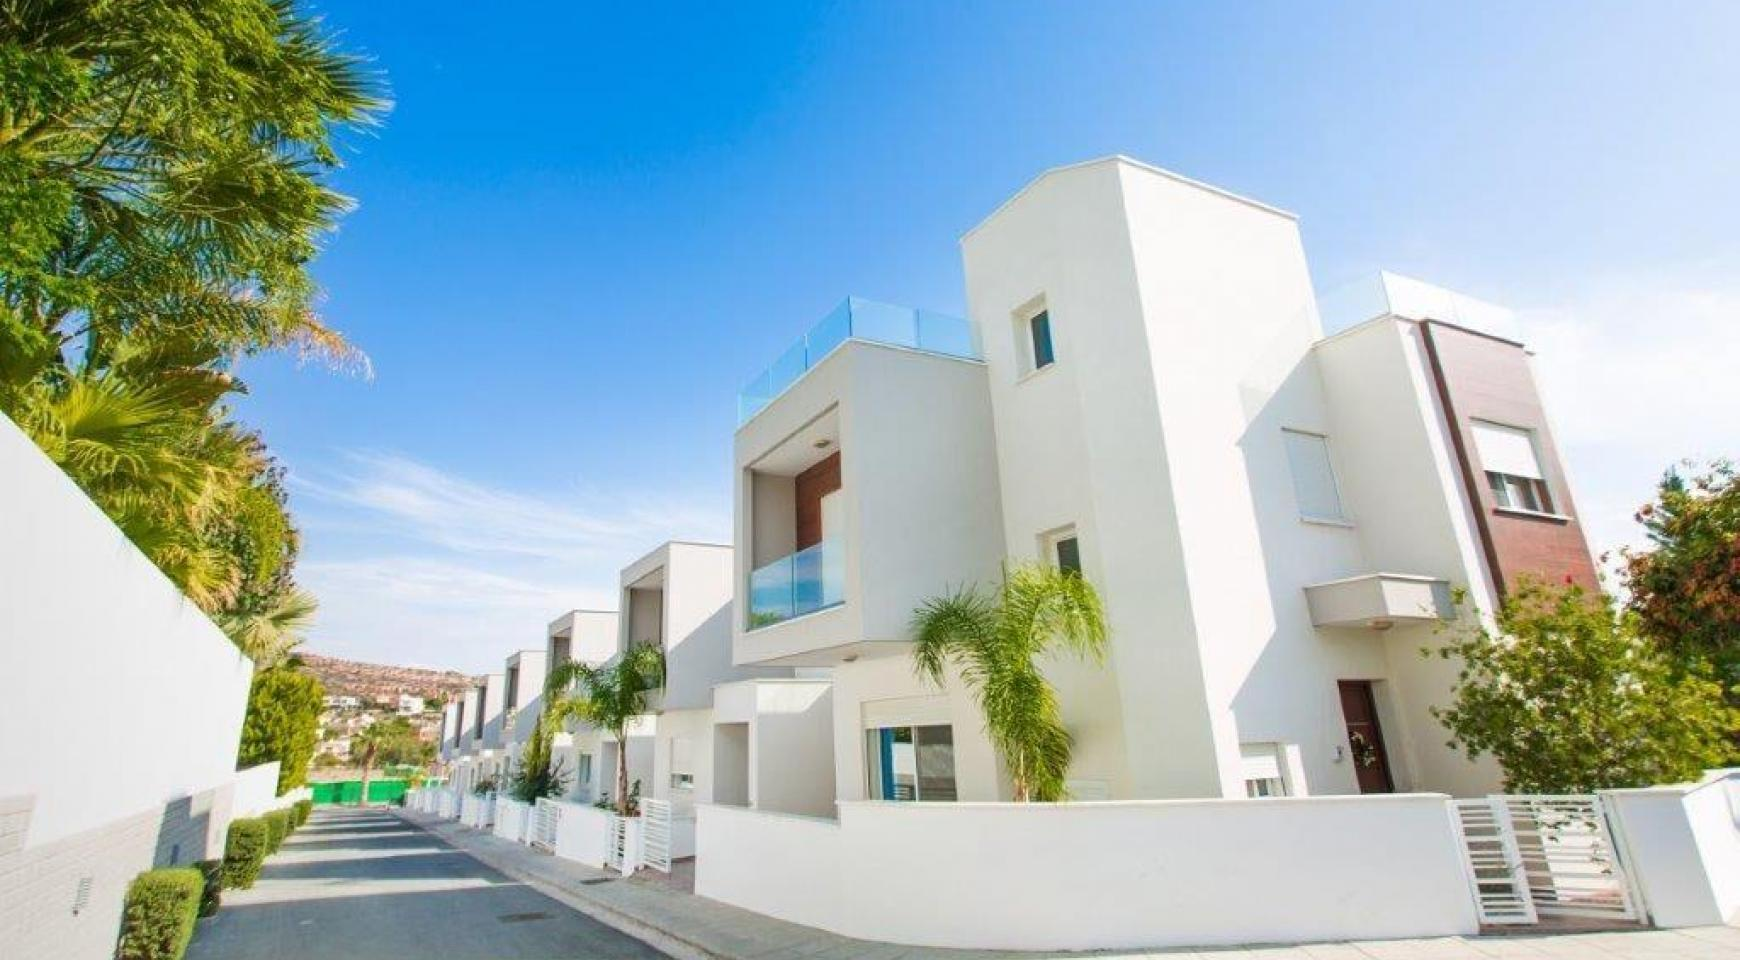 3 Bedroom Villa in Ipsonas Area - 2